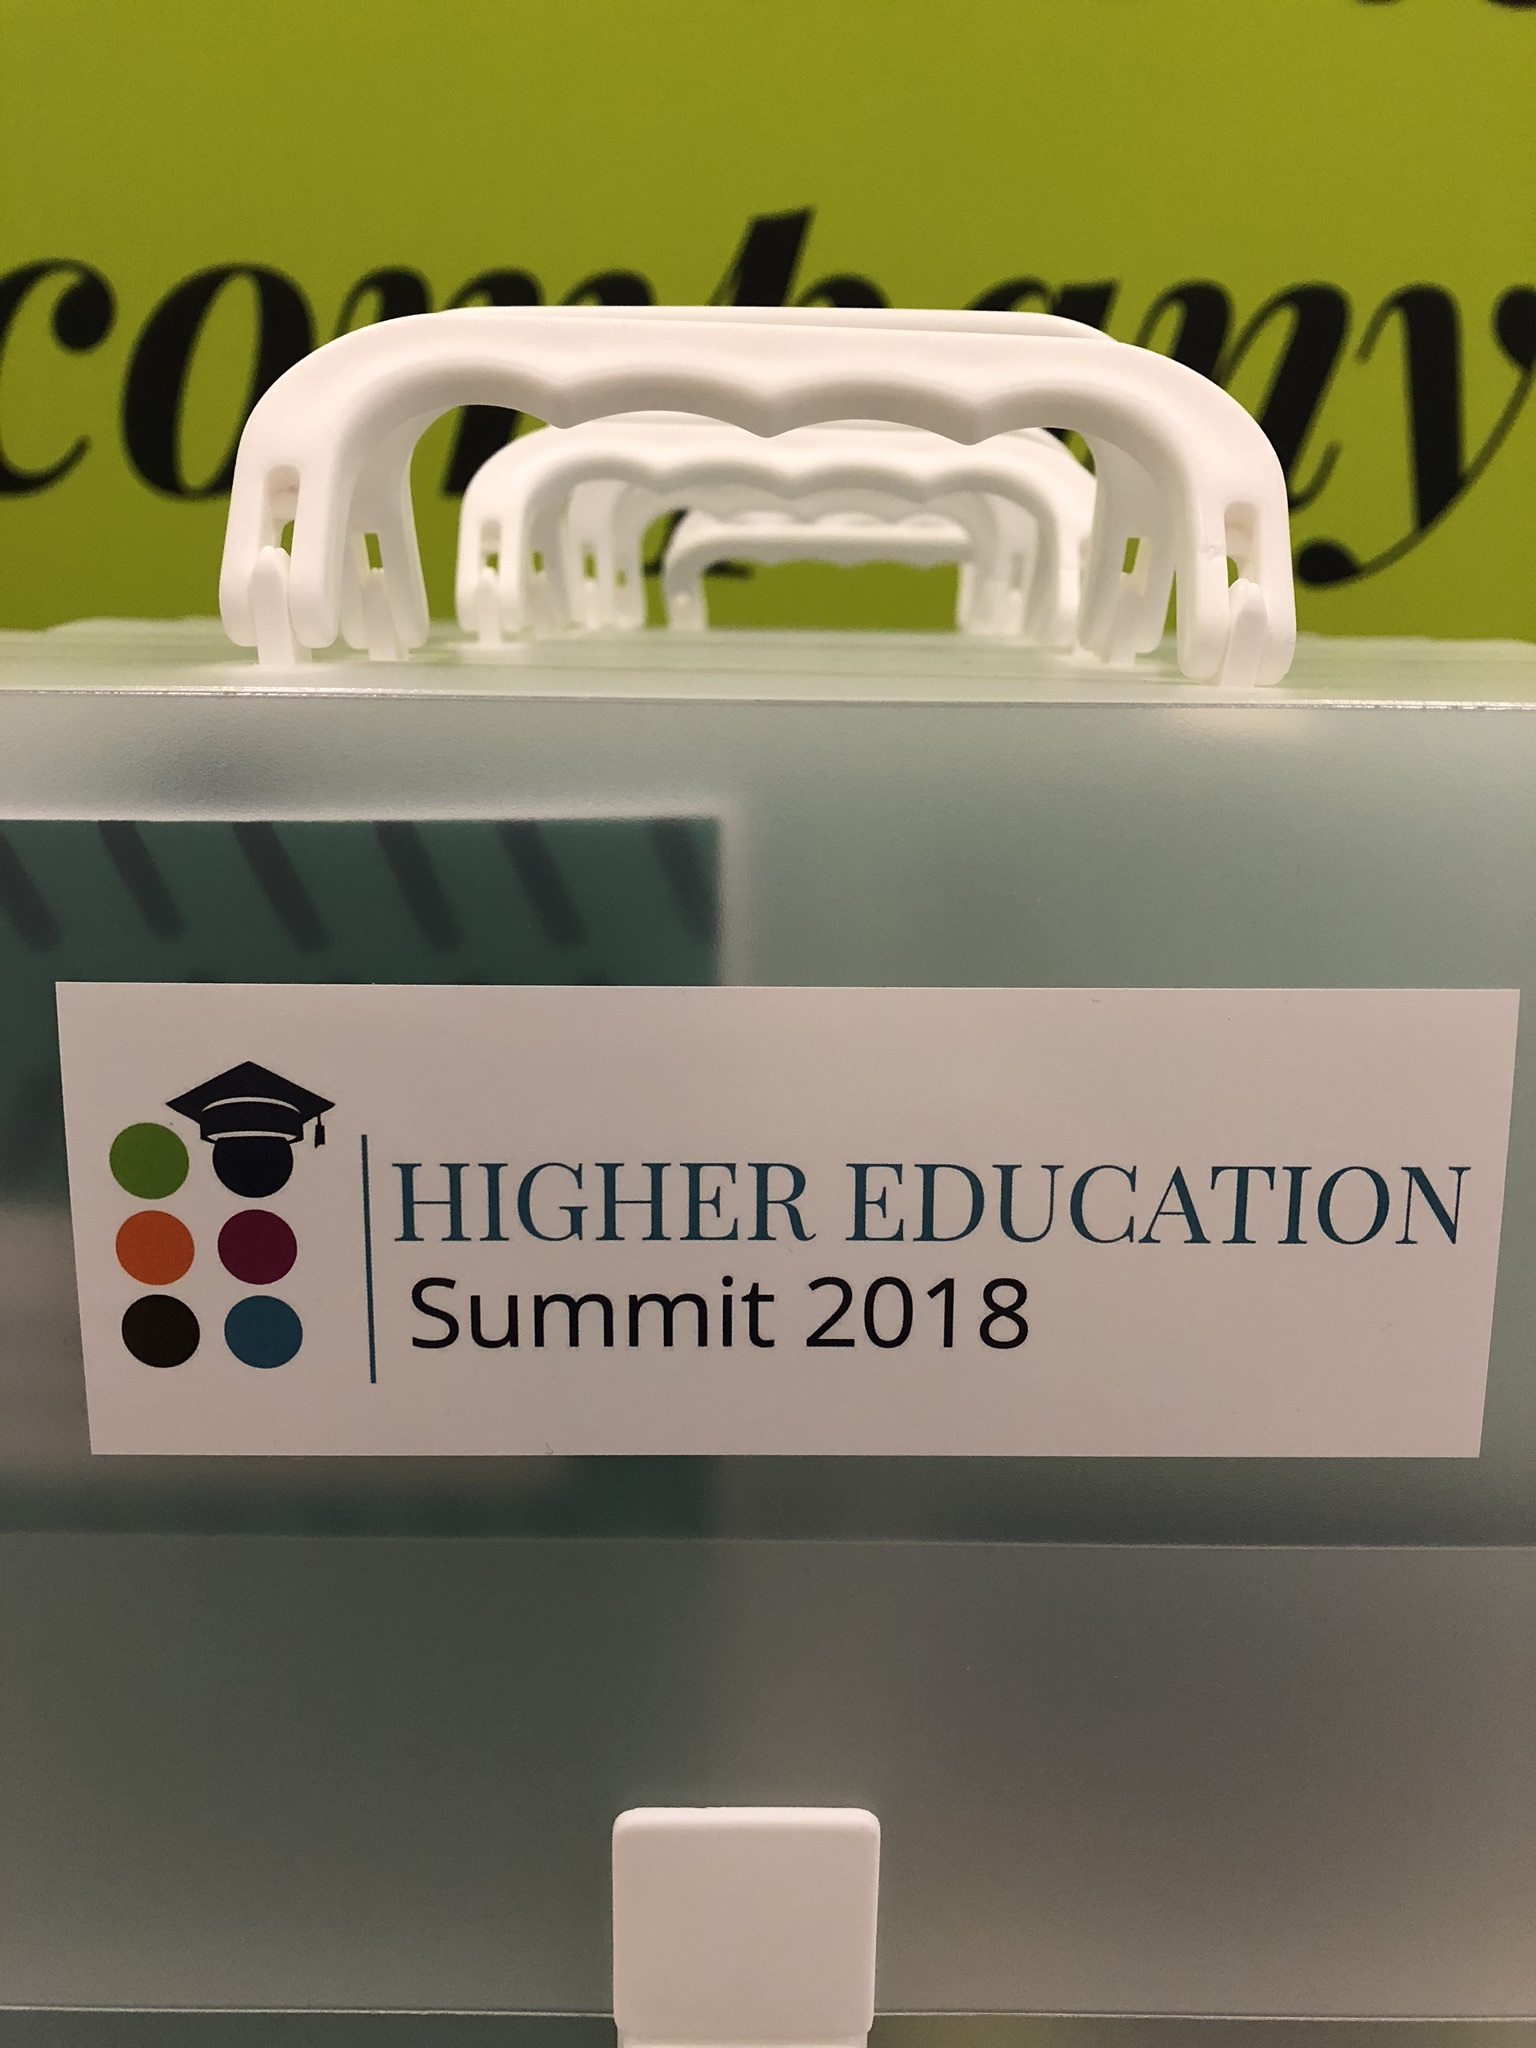 Teilnahme am Higher Education Summit 2018